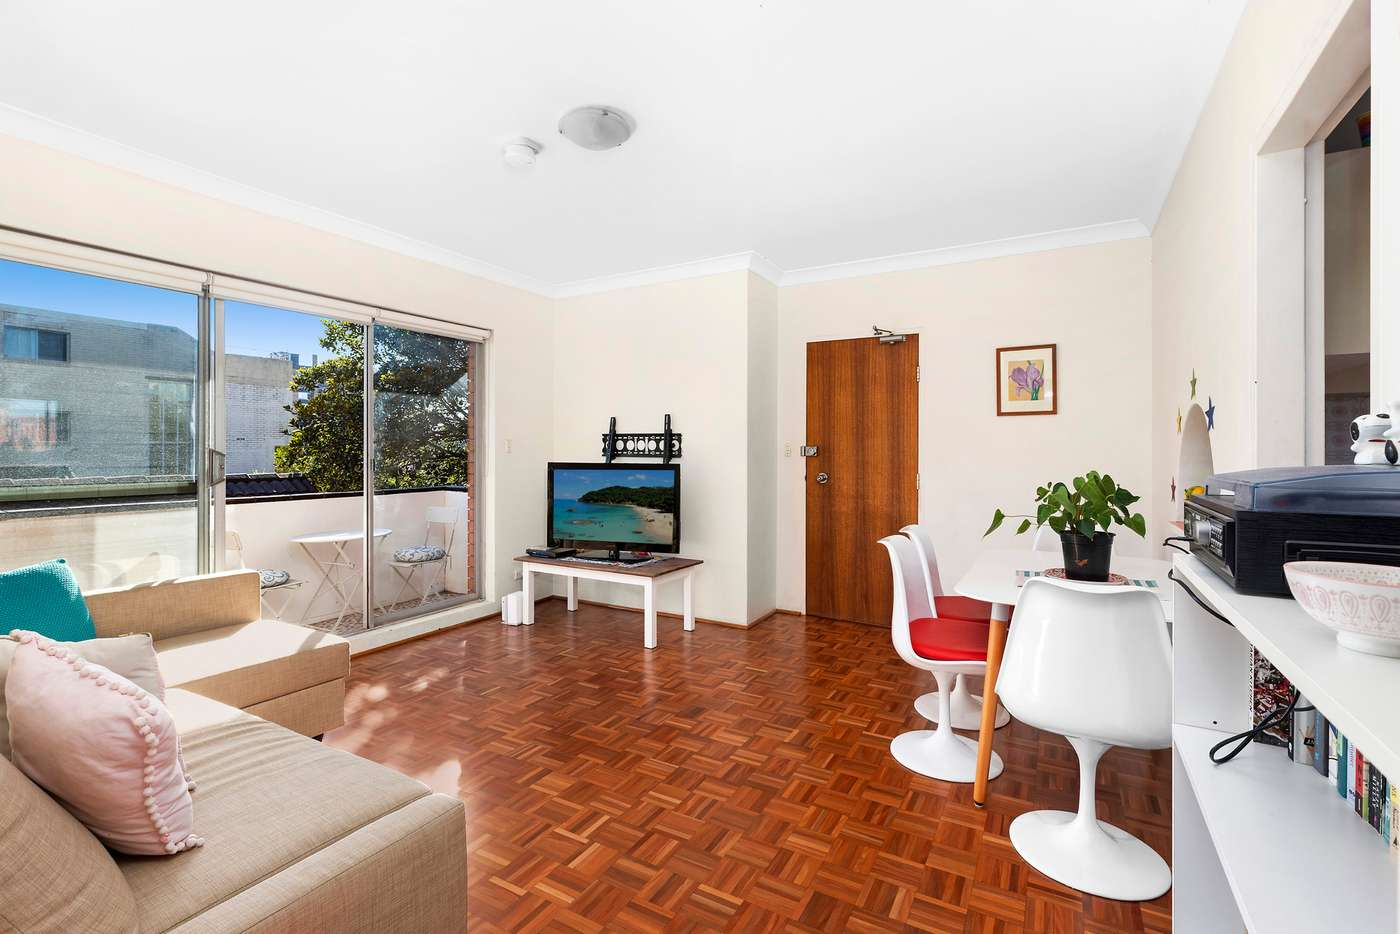 Main view of Homely apartment listing, 3/31 Boronia Street, Kensington NSW 2033